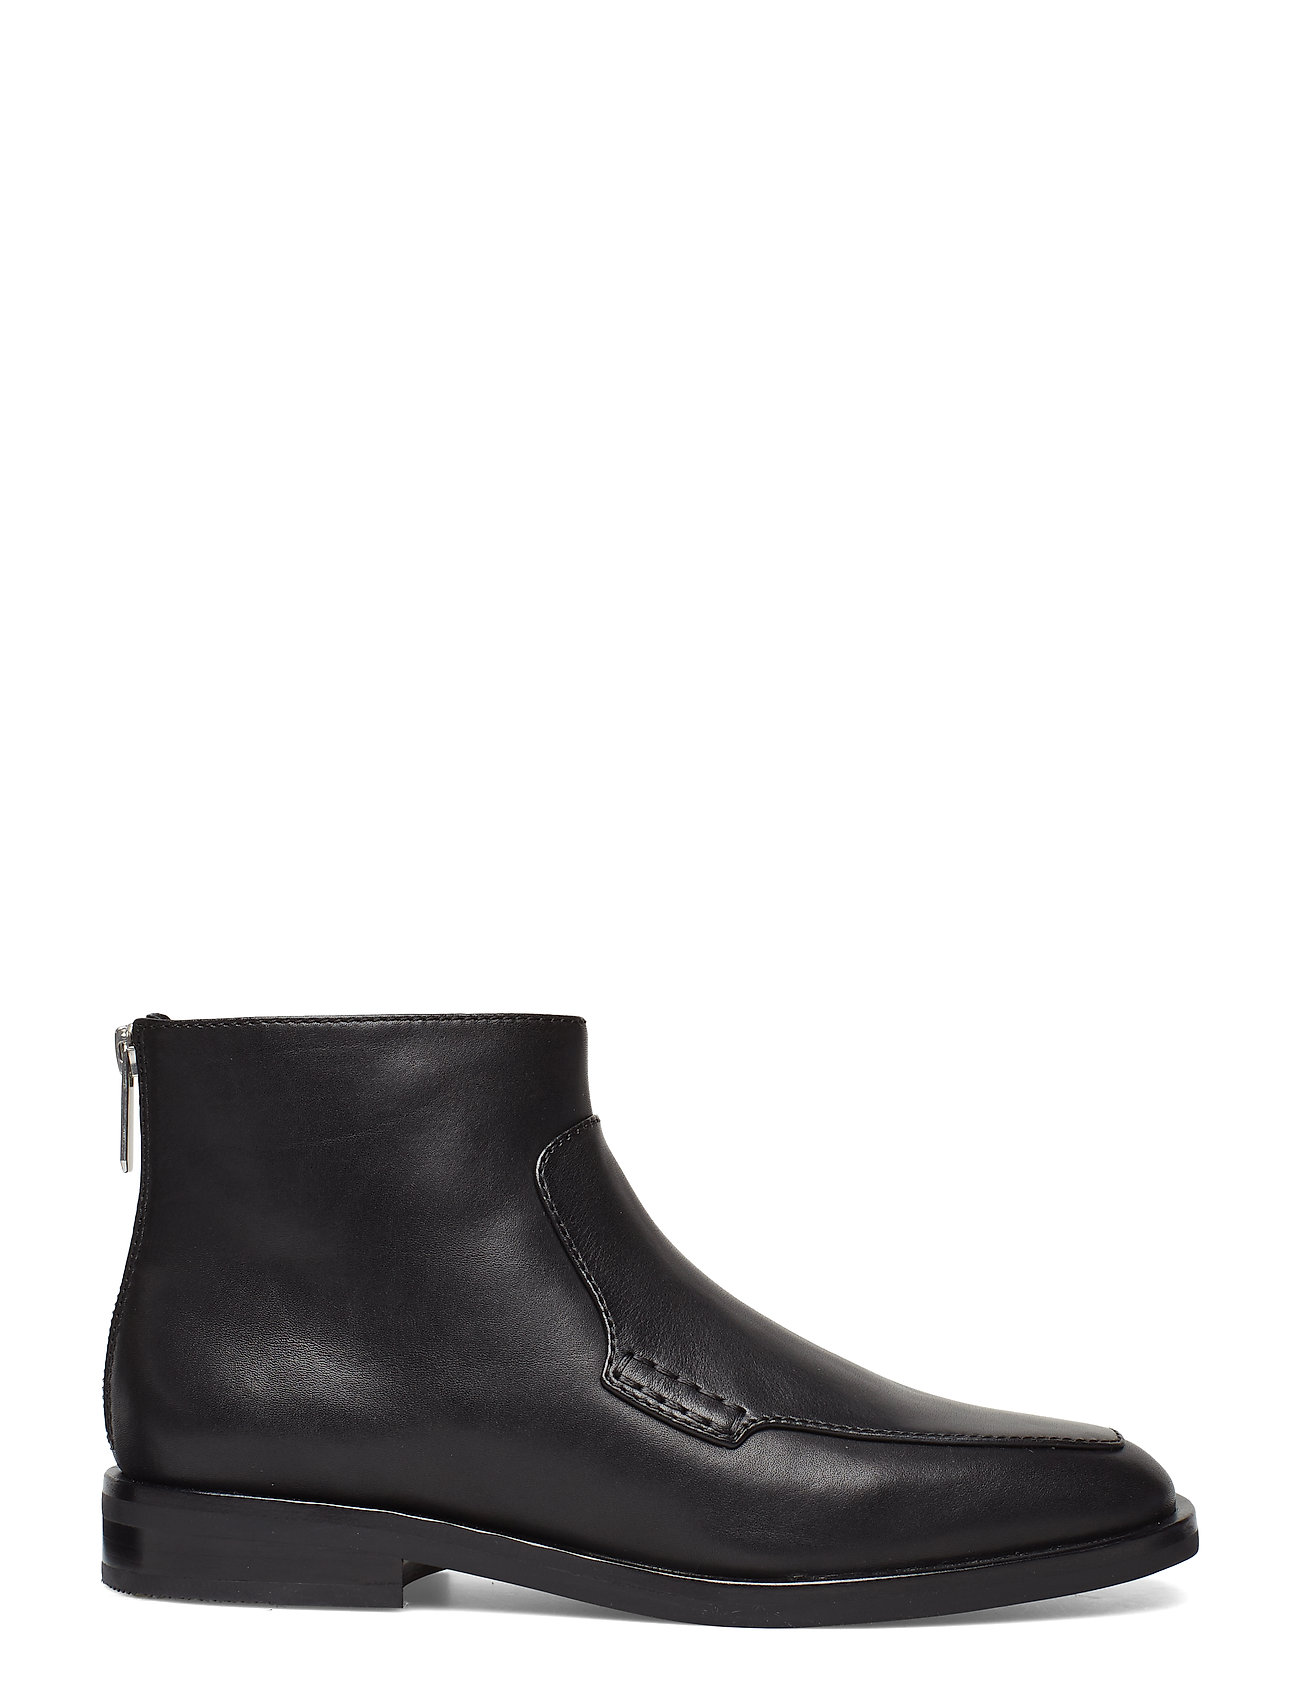 Alexa - 25mm Loafer Boot Shoes Boots Ankle Boots Ankle Boot - Flat Sort 3.1 Phillip Lim